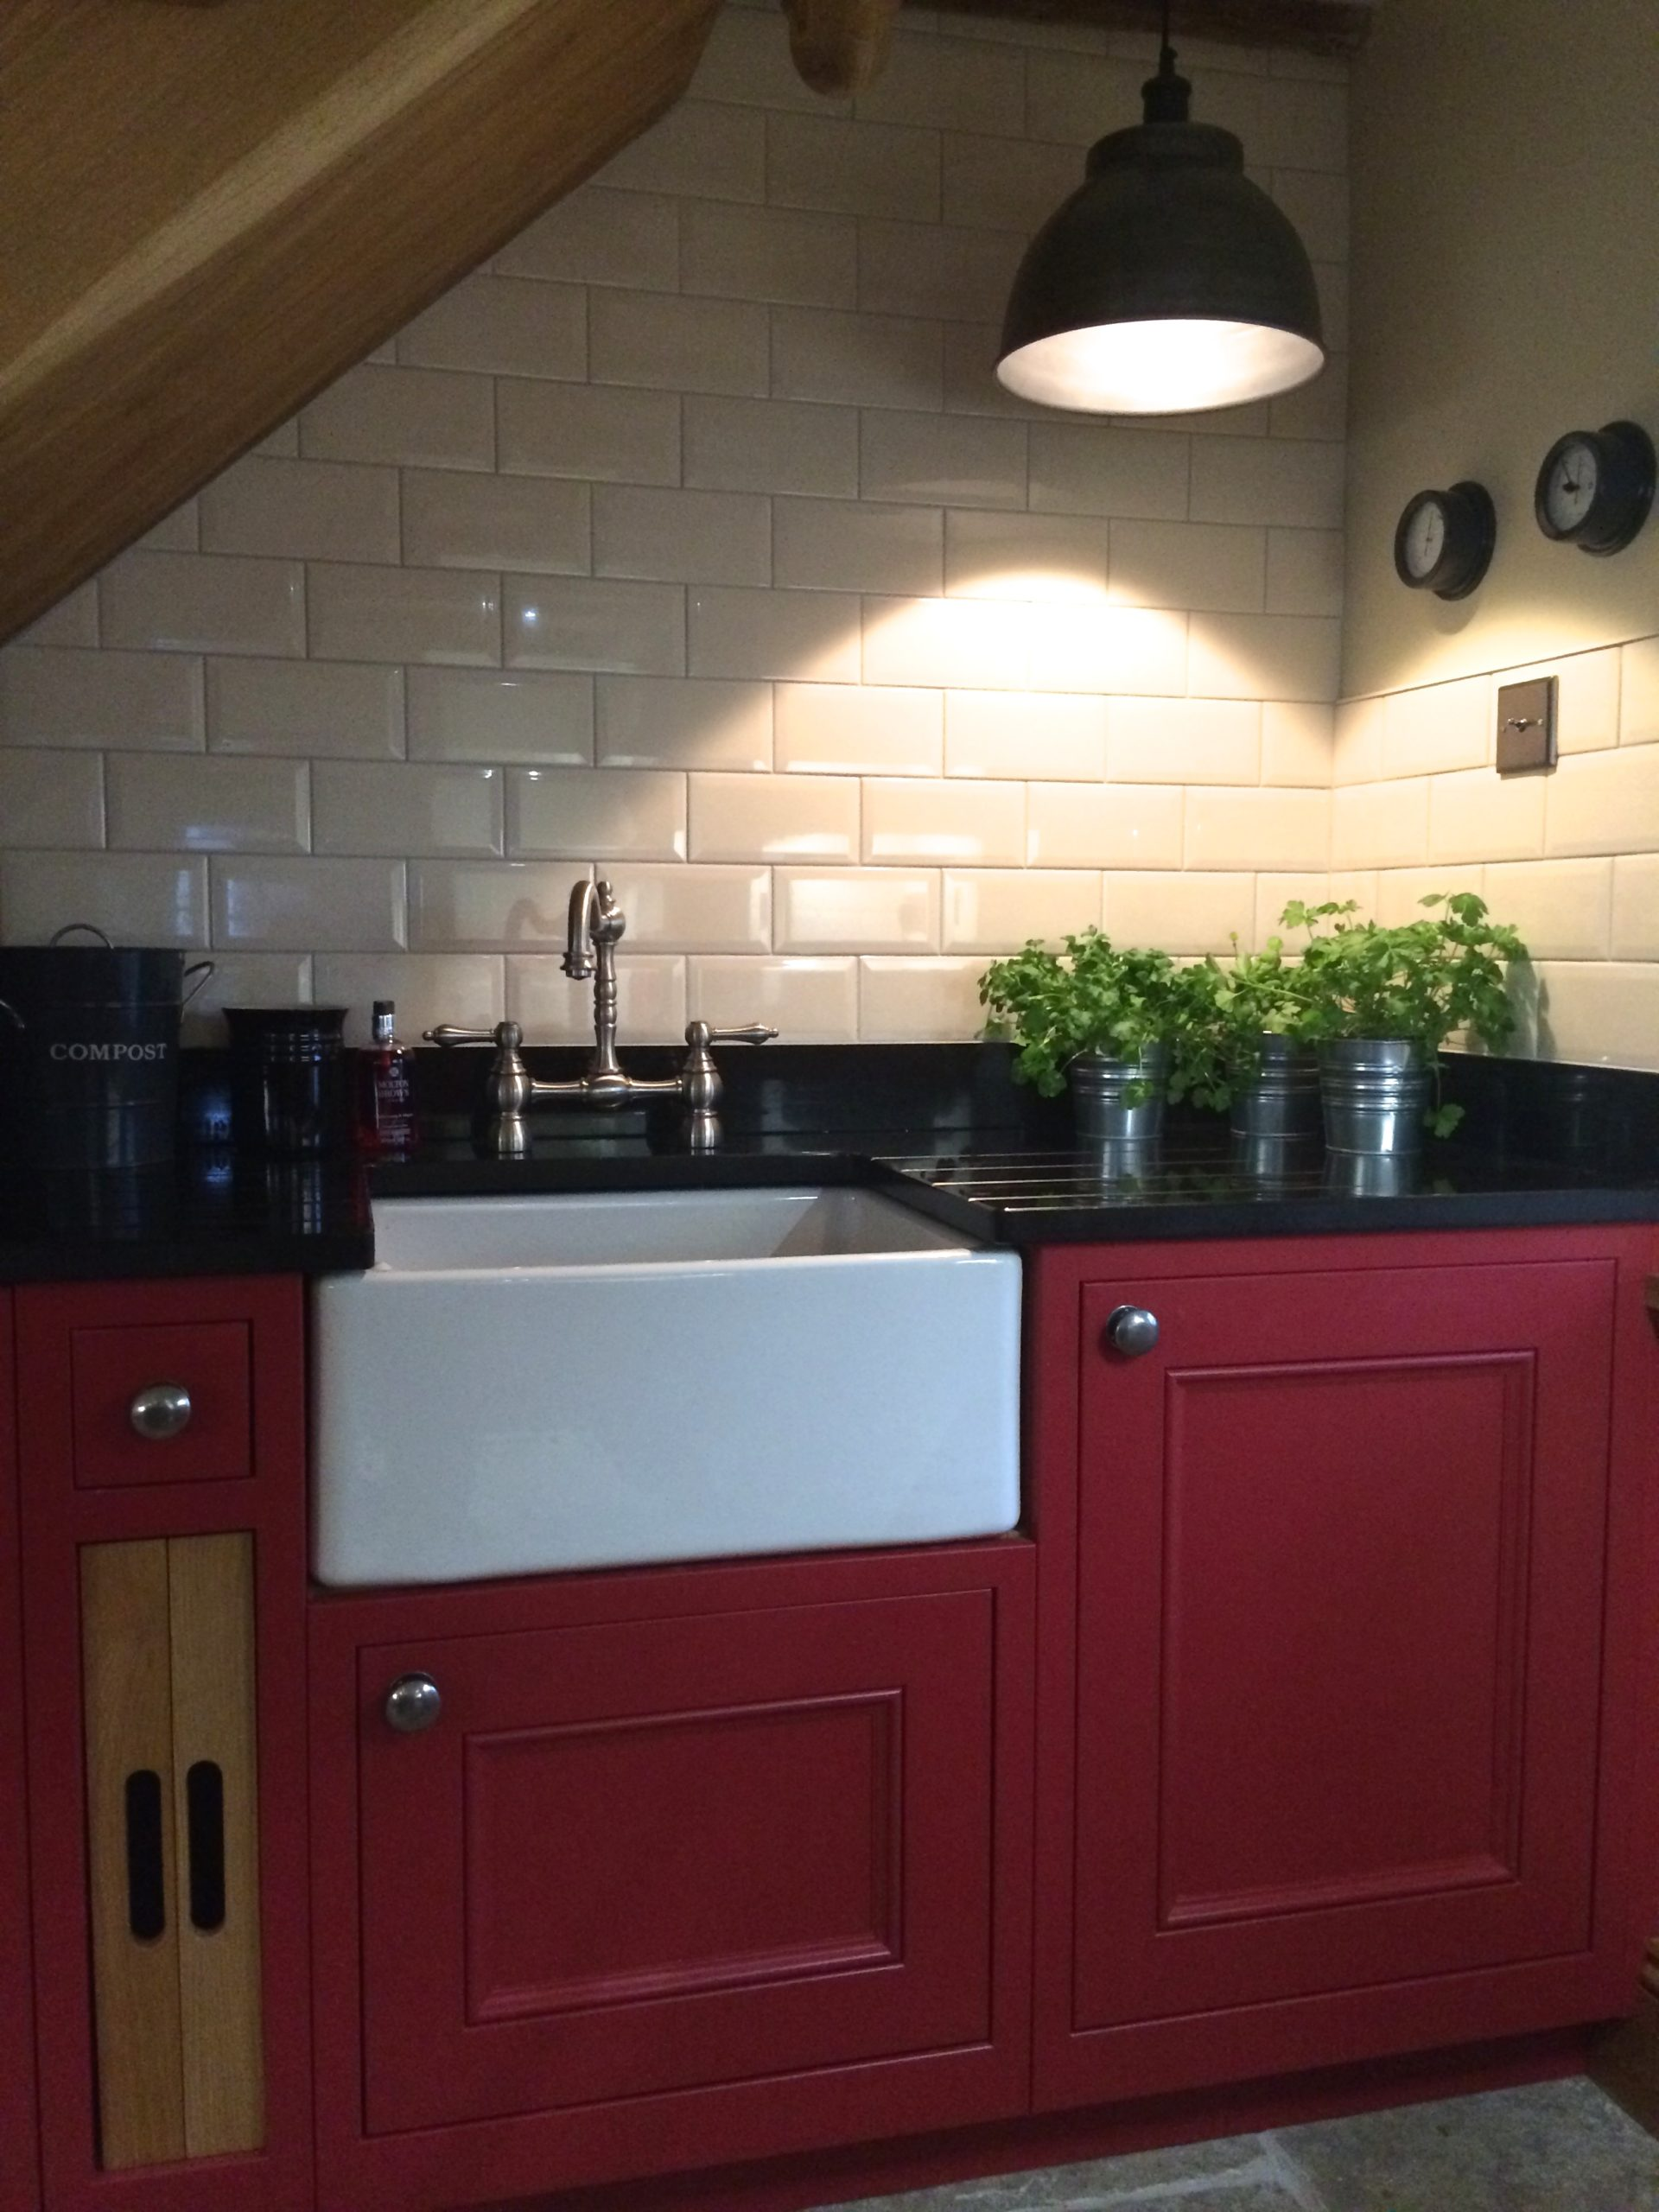 Industrial lighting rectory red kitchen traditional shaker style kitchen